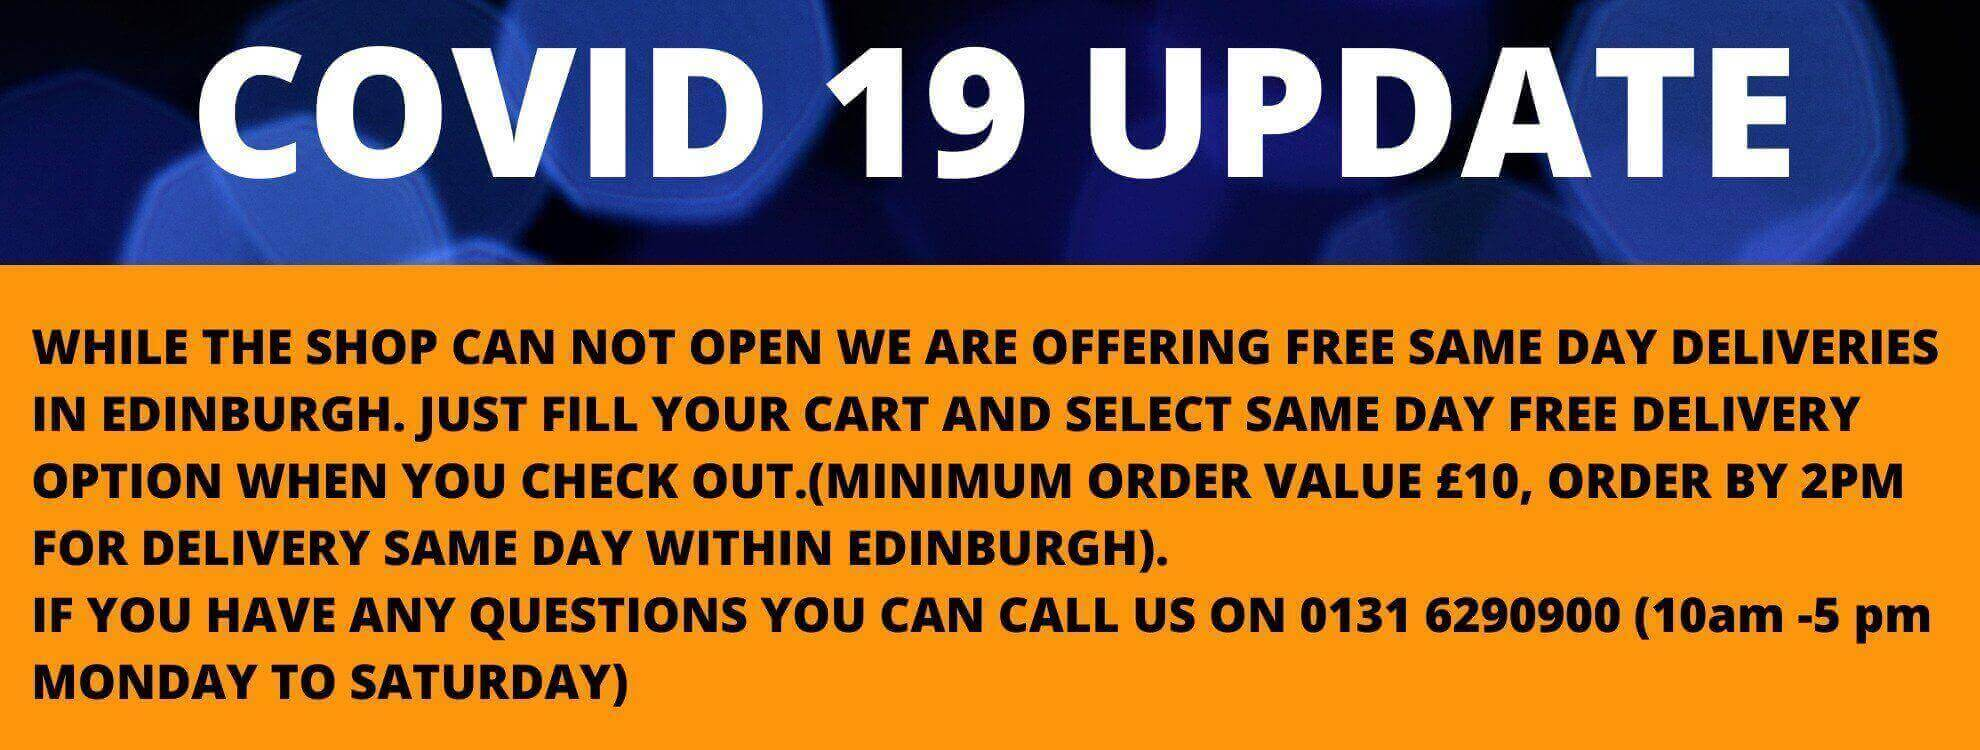 Aqua vapour free same day delivery banner